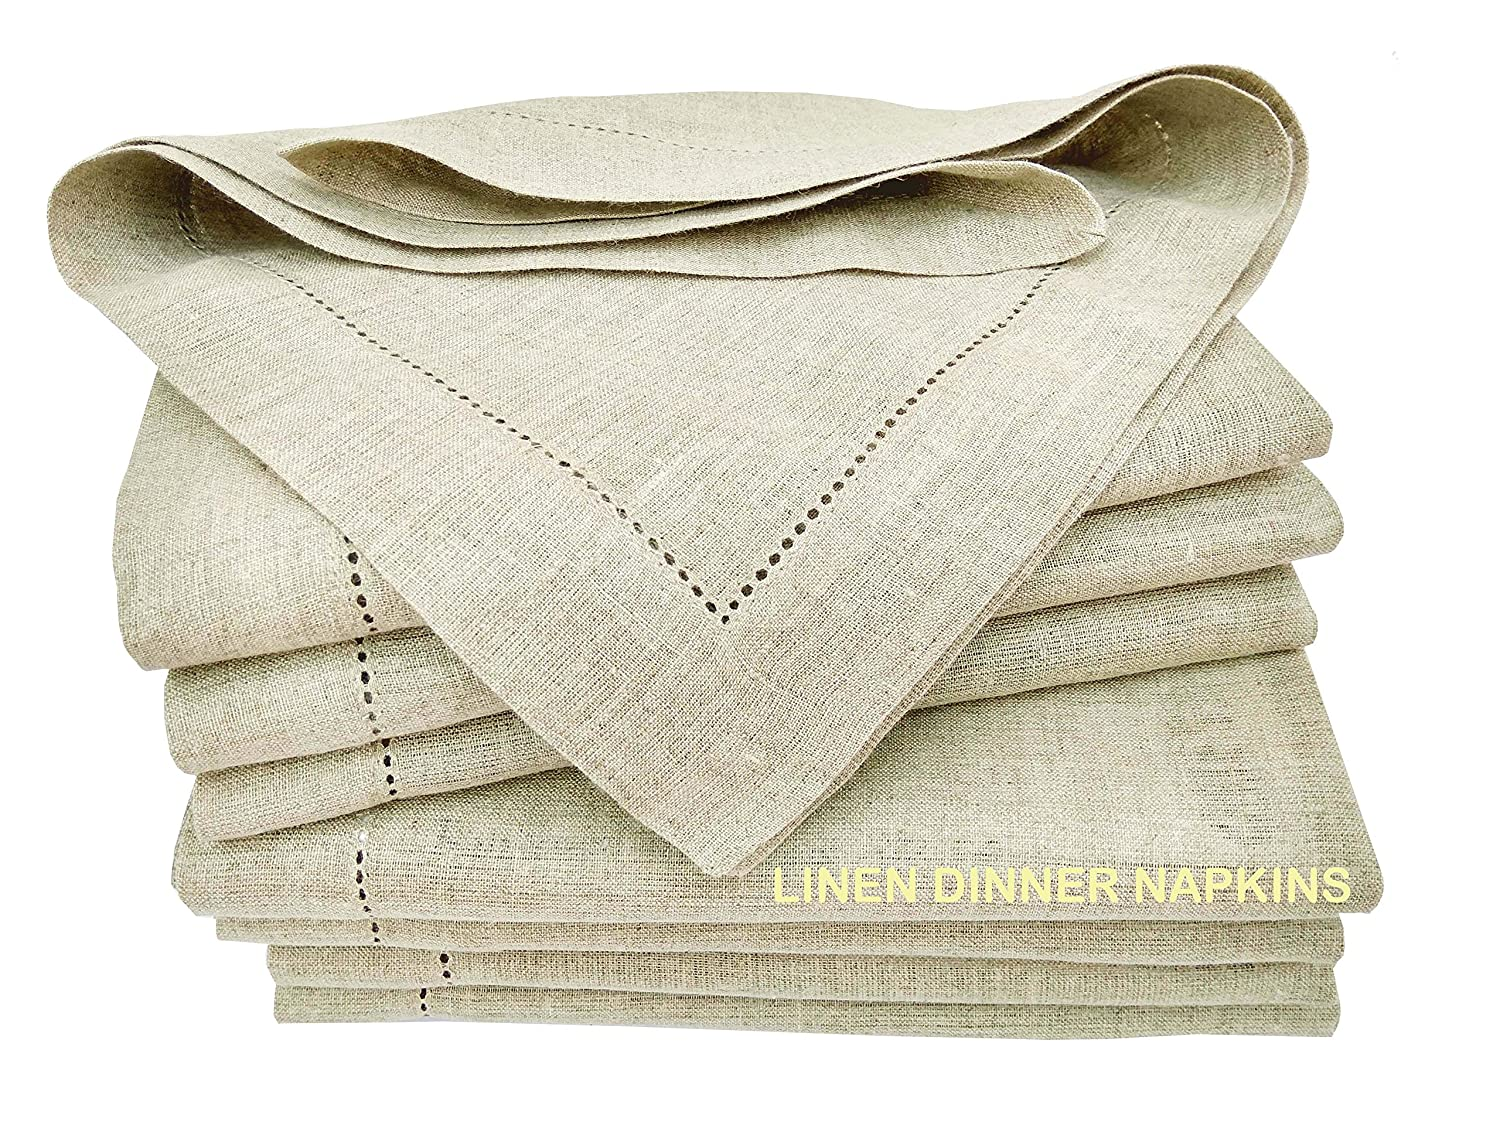 Linen Clubs - 100% Pure Linen, Dinner Napkin with Hem Stitched - Charcoal - 16x16 inches (Set of 12 Pack). Hemstitched Hand Made Ladder Lace Look Napkins. One of Life's Little Home Luxuries Green Frog International